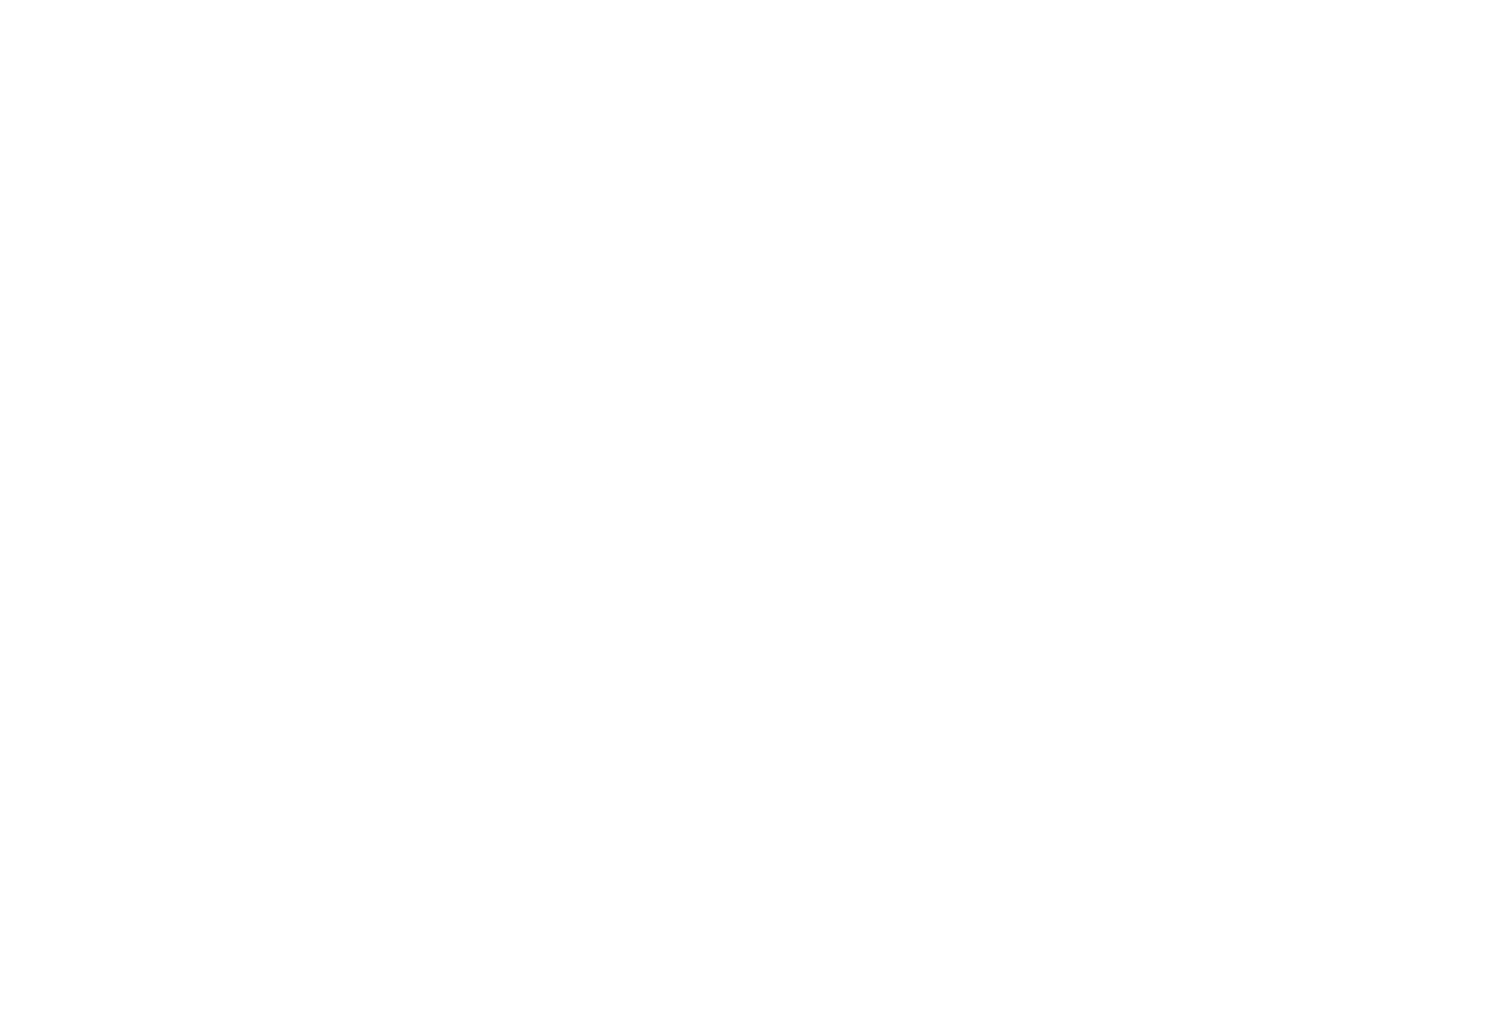 901 Home Inspection, LLC